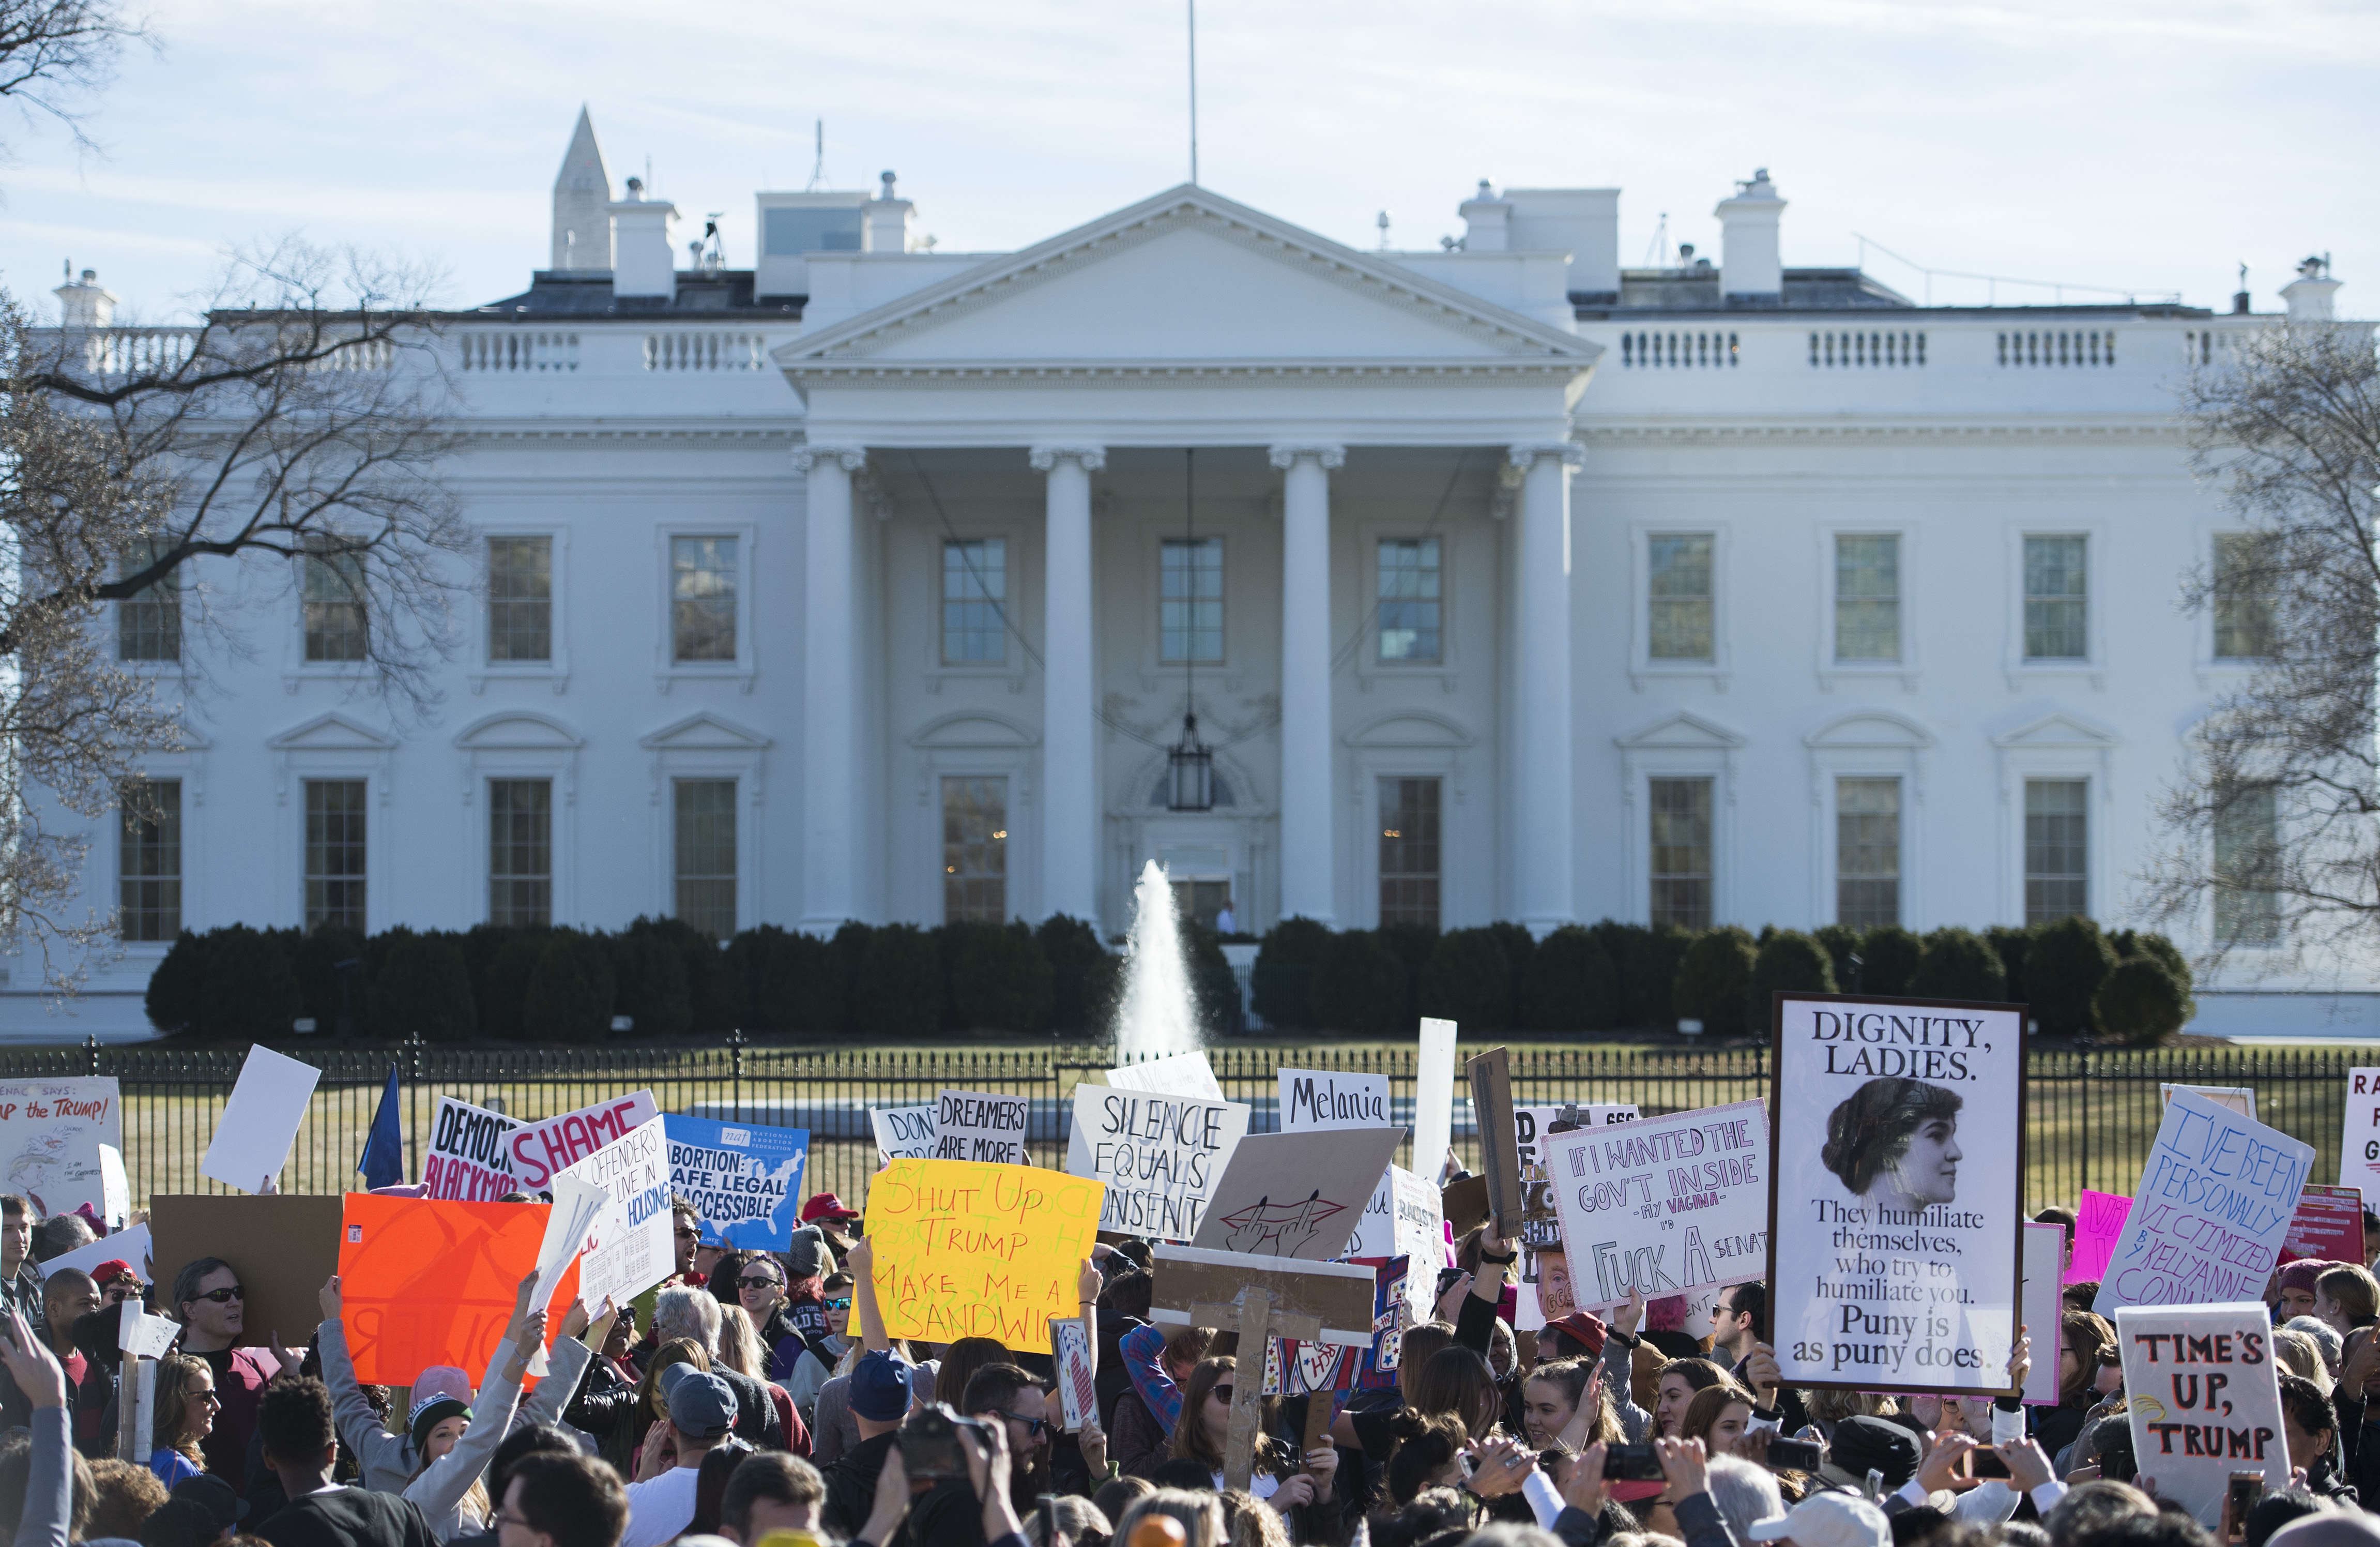 Protesters hold up a sign near the White House following the Women's March on Washington 2018: March On The Polls! on the National Mall on January 20, 2018 in Washington DC (ANDREW CABALLERO-REYNOLDS/AFP/Getty Images)